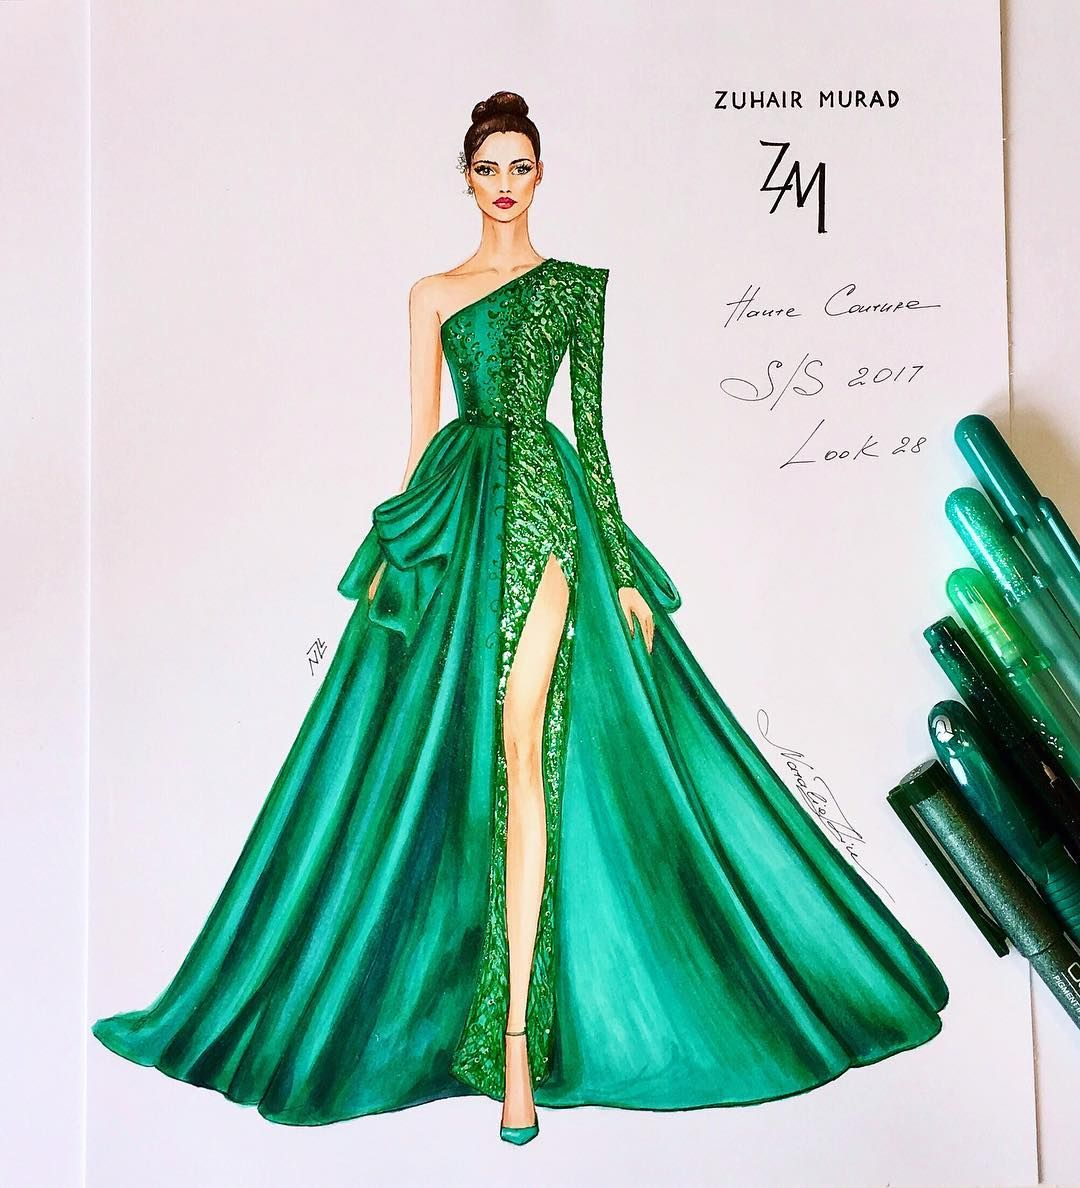 Magnificent Couture Gown Of The Zuhair Murad Spring Summer